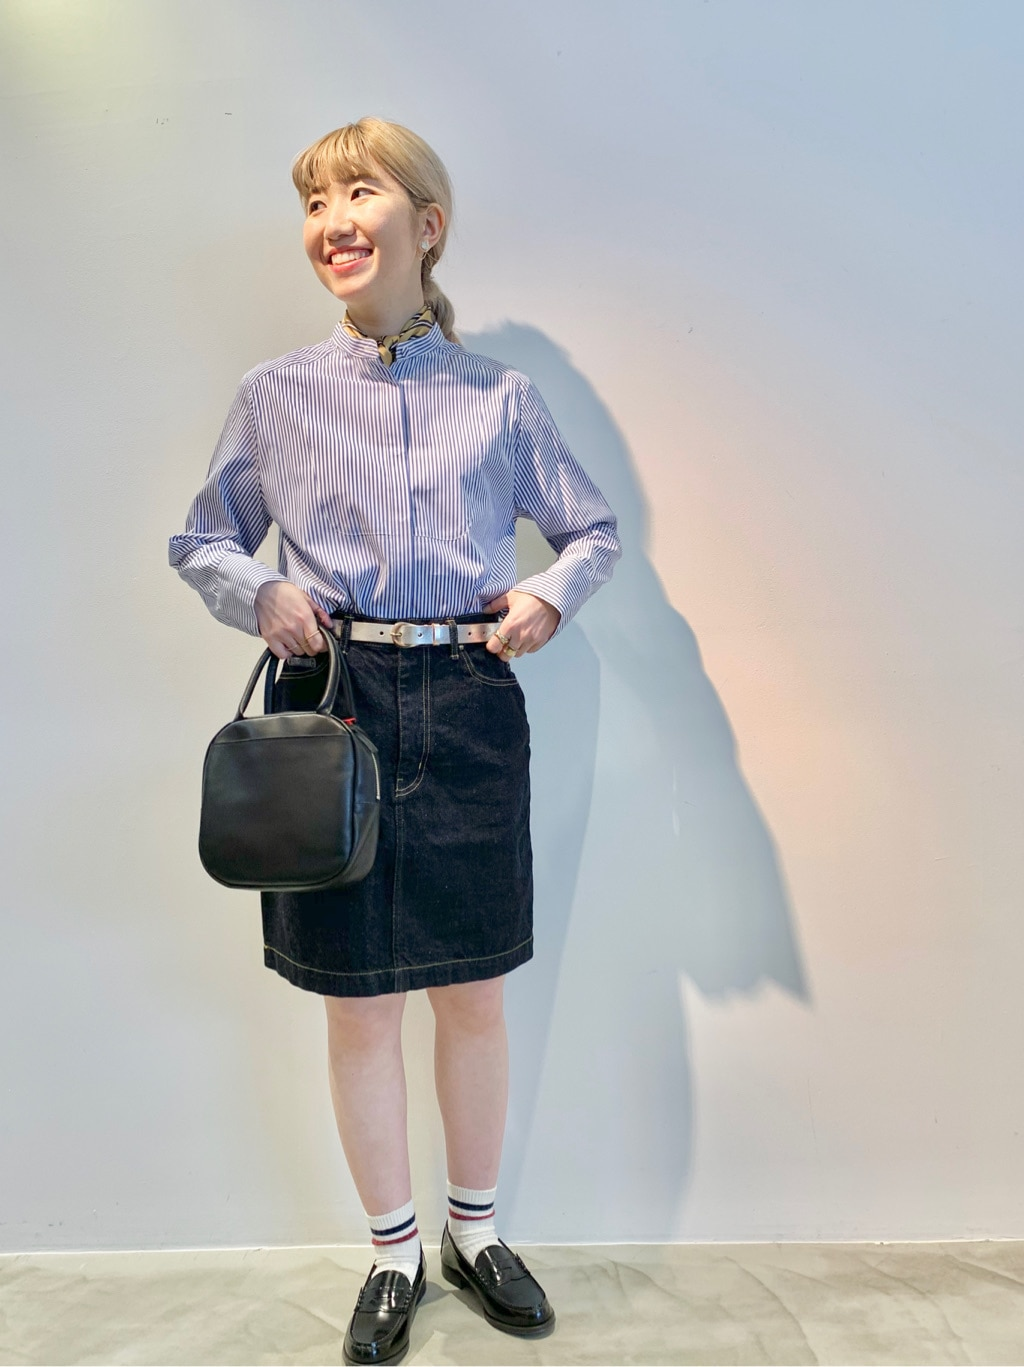 Dot and Stripes CHILD WOMAN ラフォーレ原宿 身長:160cm 2020.04.01